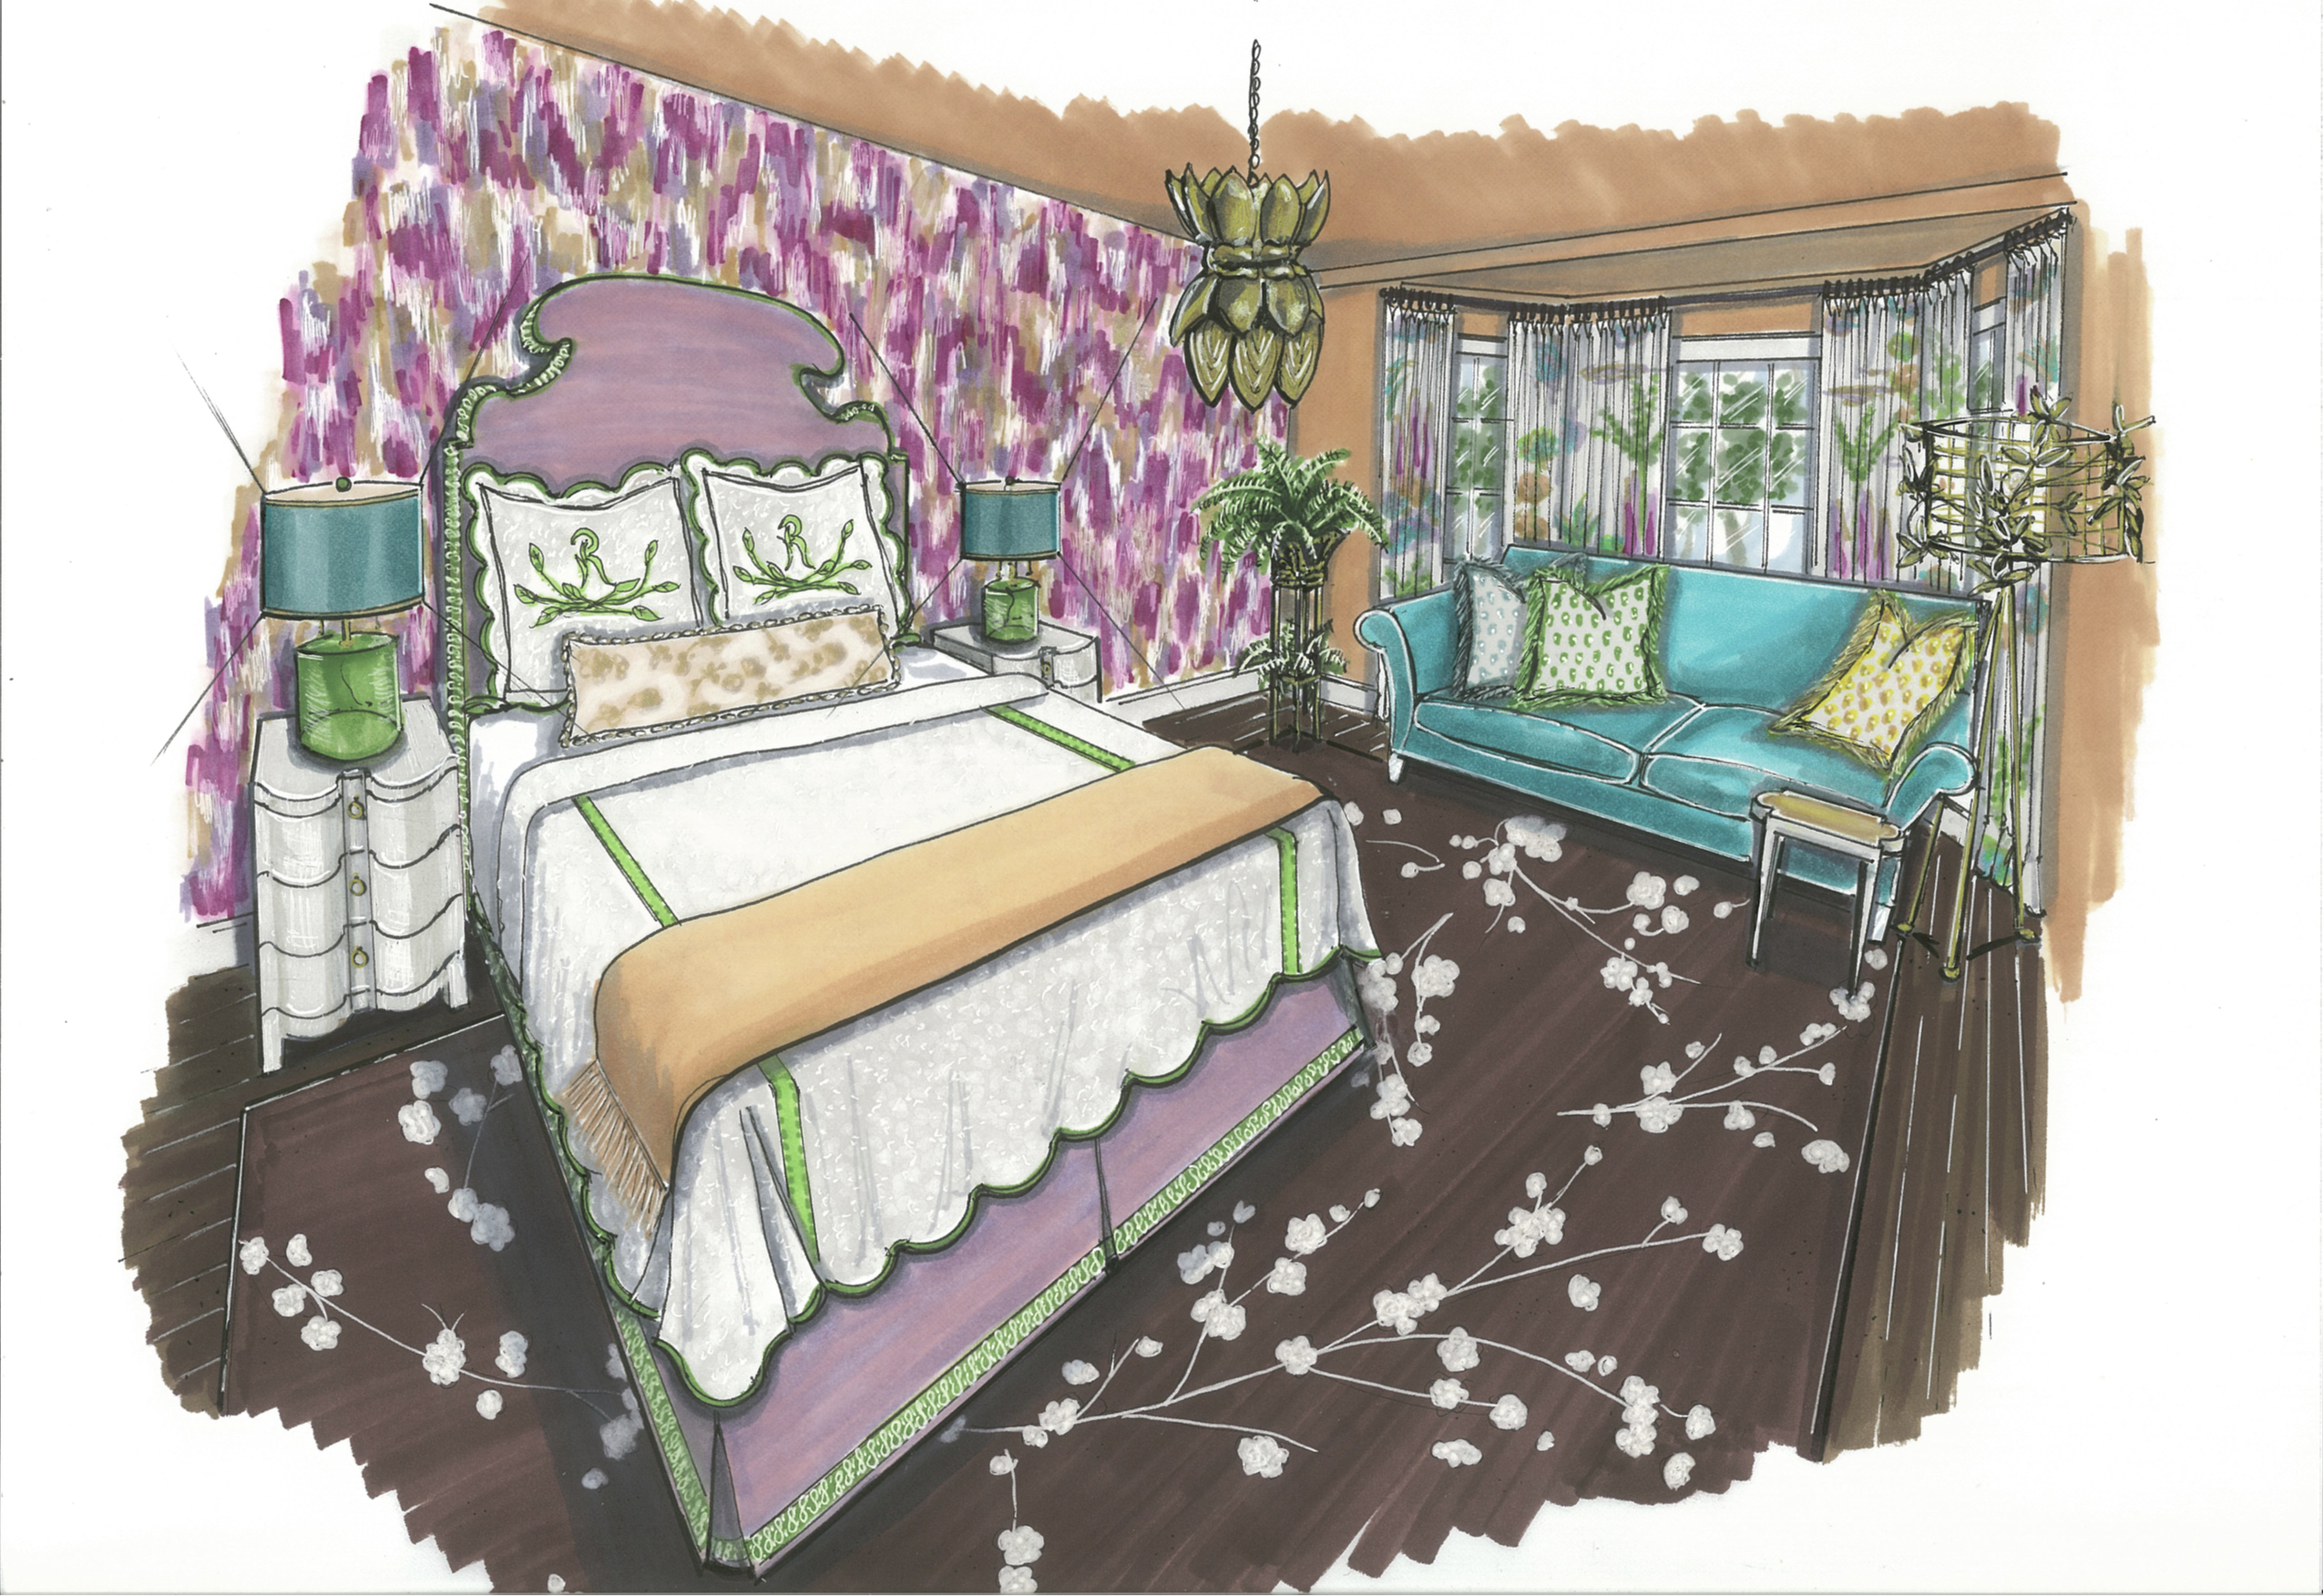 Junior League of Boston 2016 Show House Mother-in-Law Bedroom | Rendering by Jane Gianarelli | Kelly Rogers Interiors